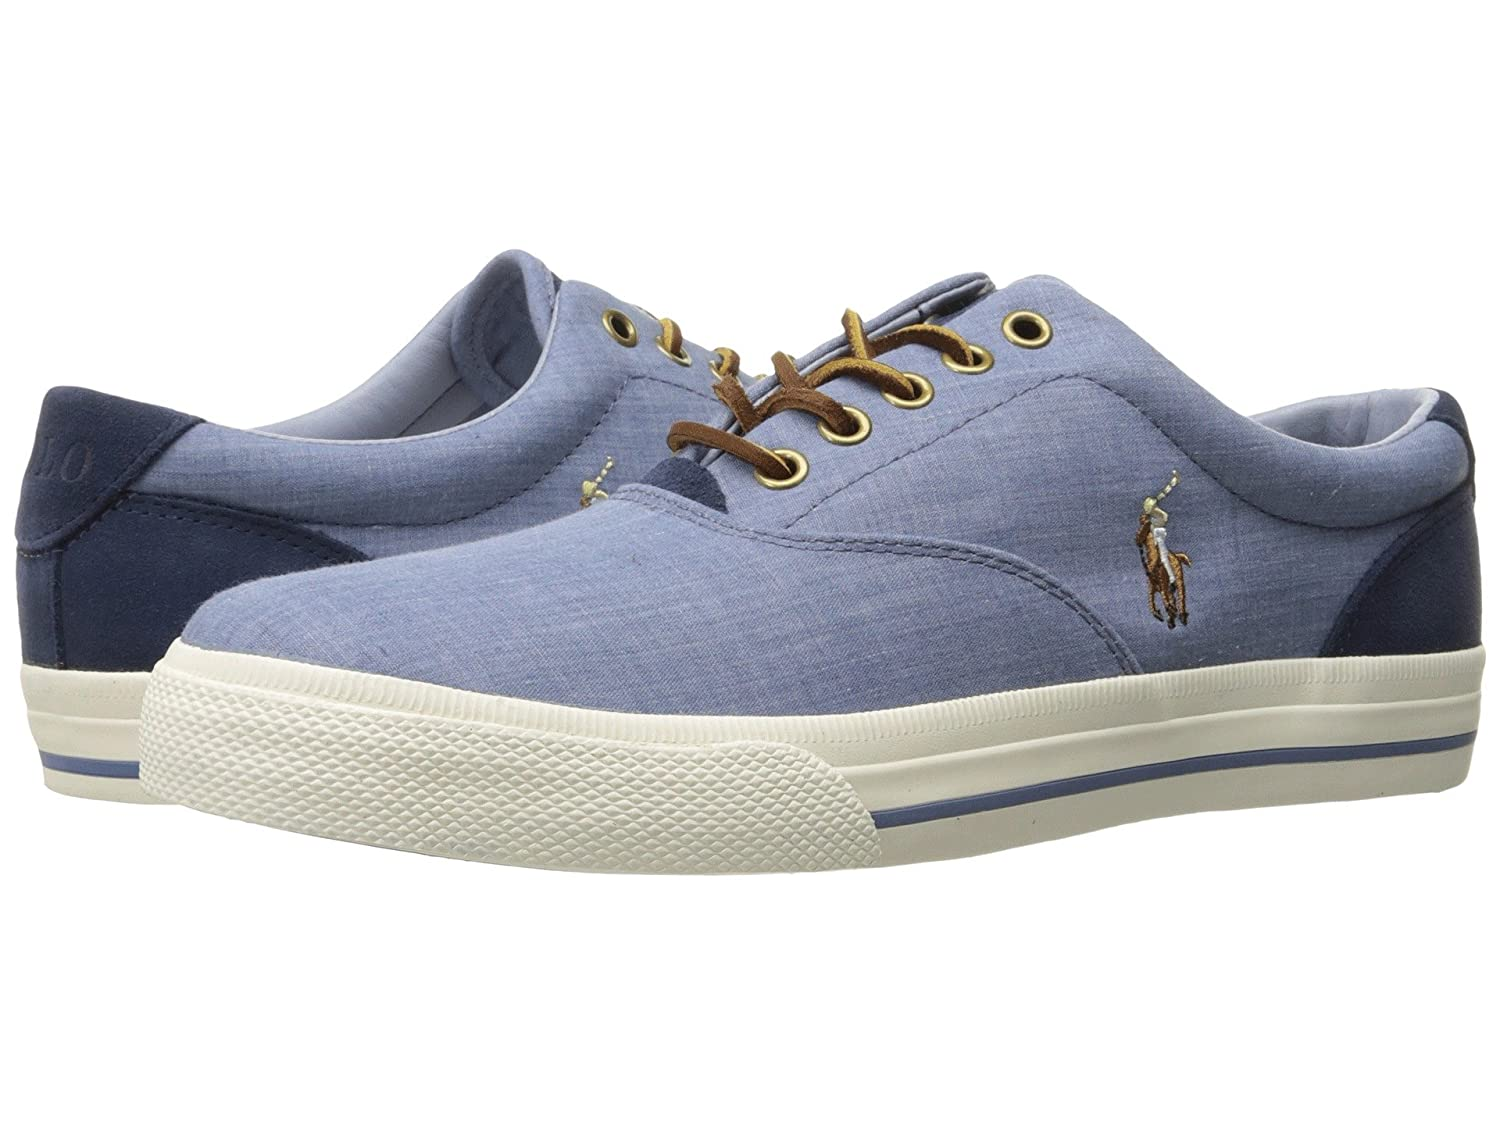 [Polo Ralph Lauren(ポロラルフローレン)] メンズカジュアルシューズスニーカー靴 Vaughn Blue/Indigo End Canvas/Sport Suede 9 (27.5cm) M B07DC7HGTF